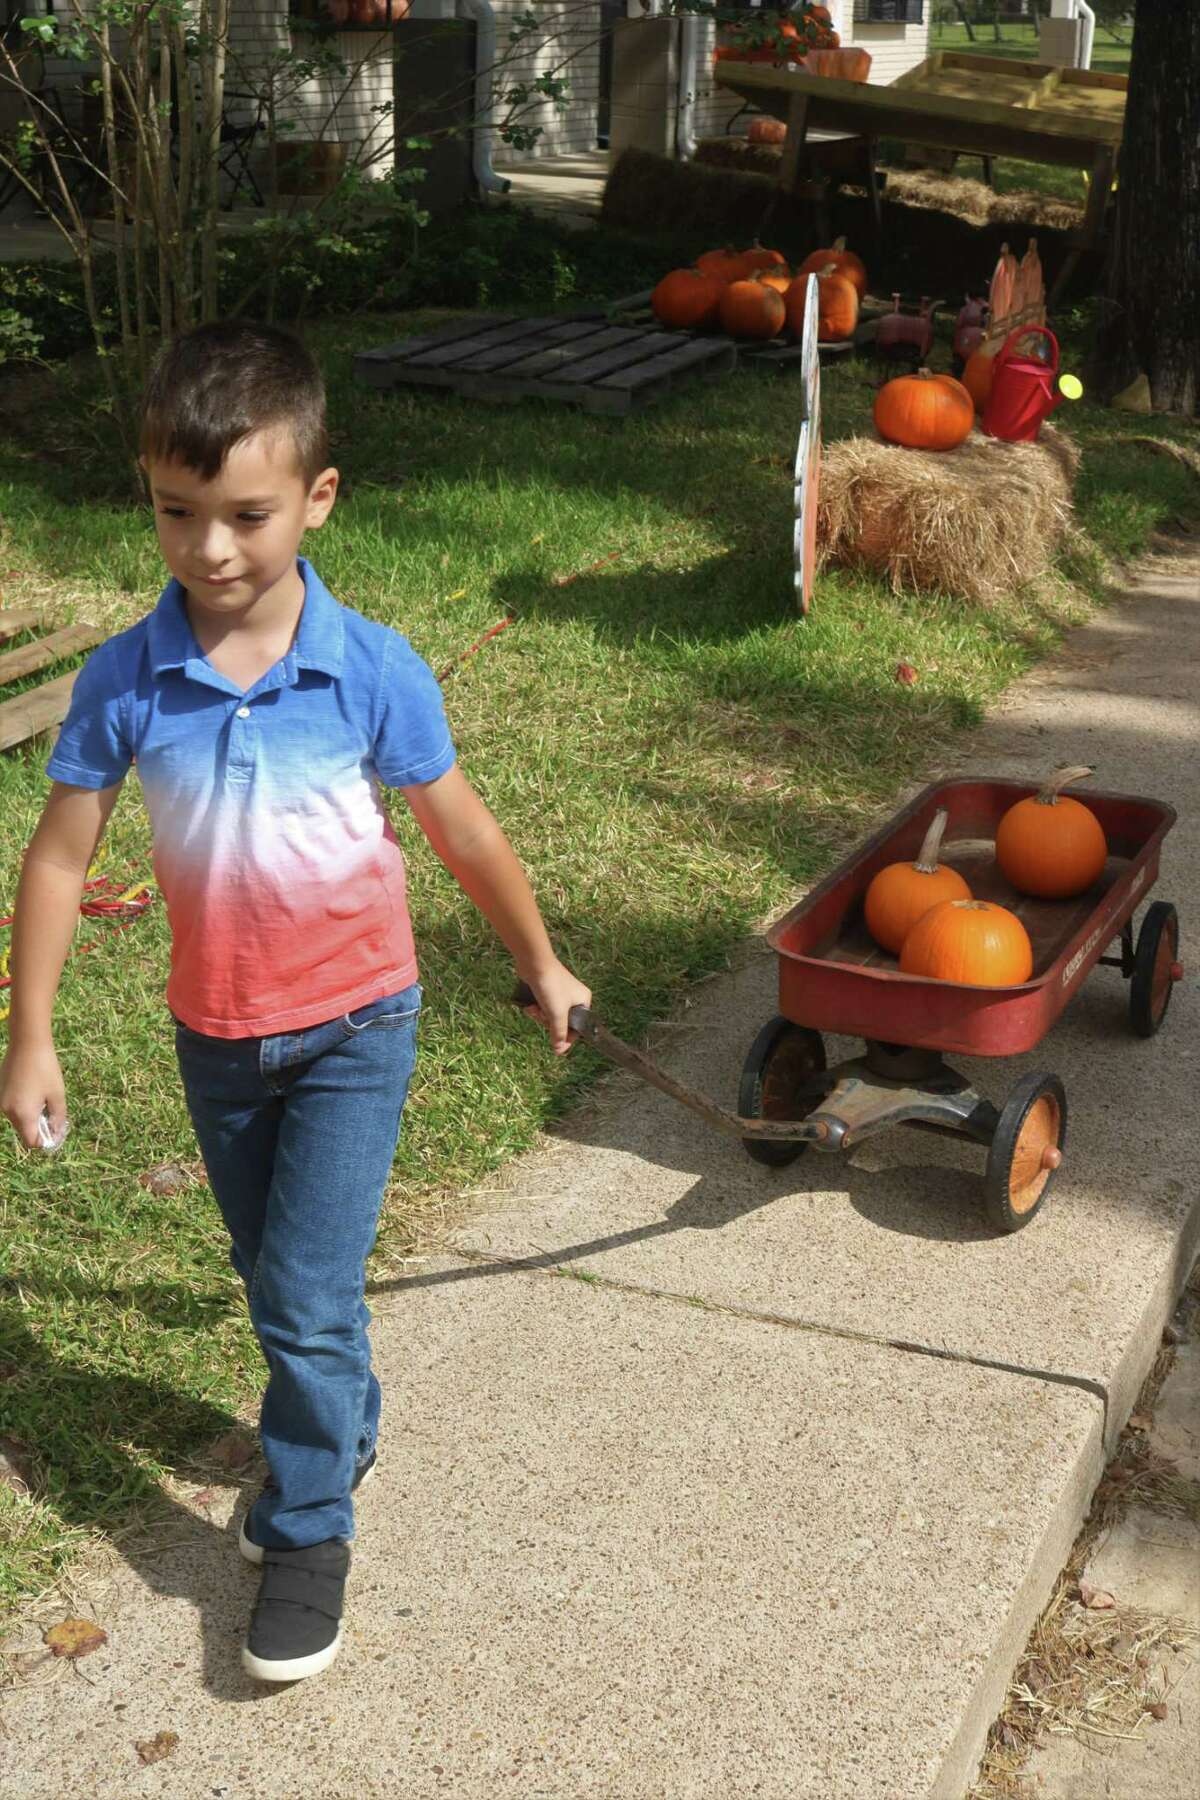 Adam Mendoza heads for the family car with some pumpkins that were just bought at the Blue Monkey Resale Shop Pumpkin Patch.